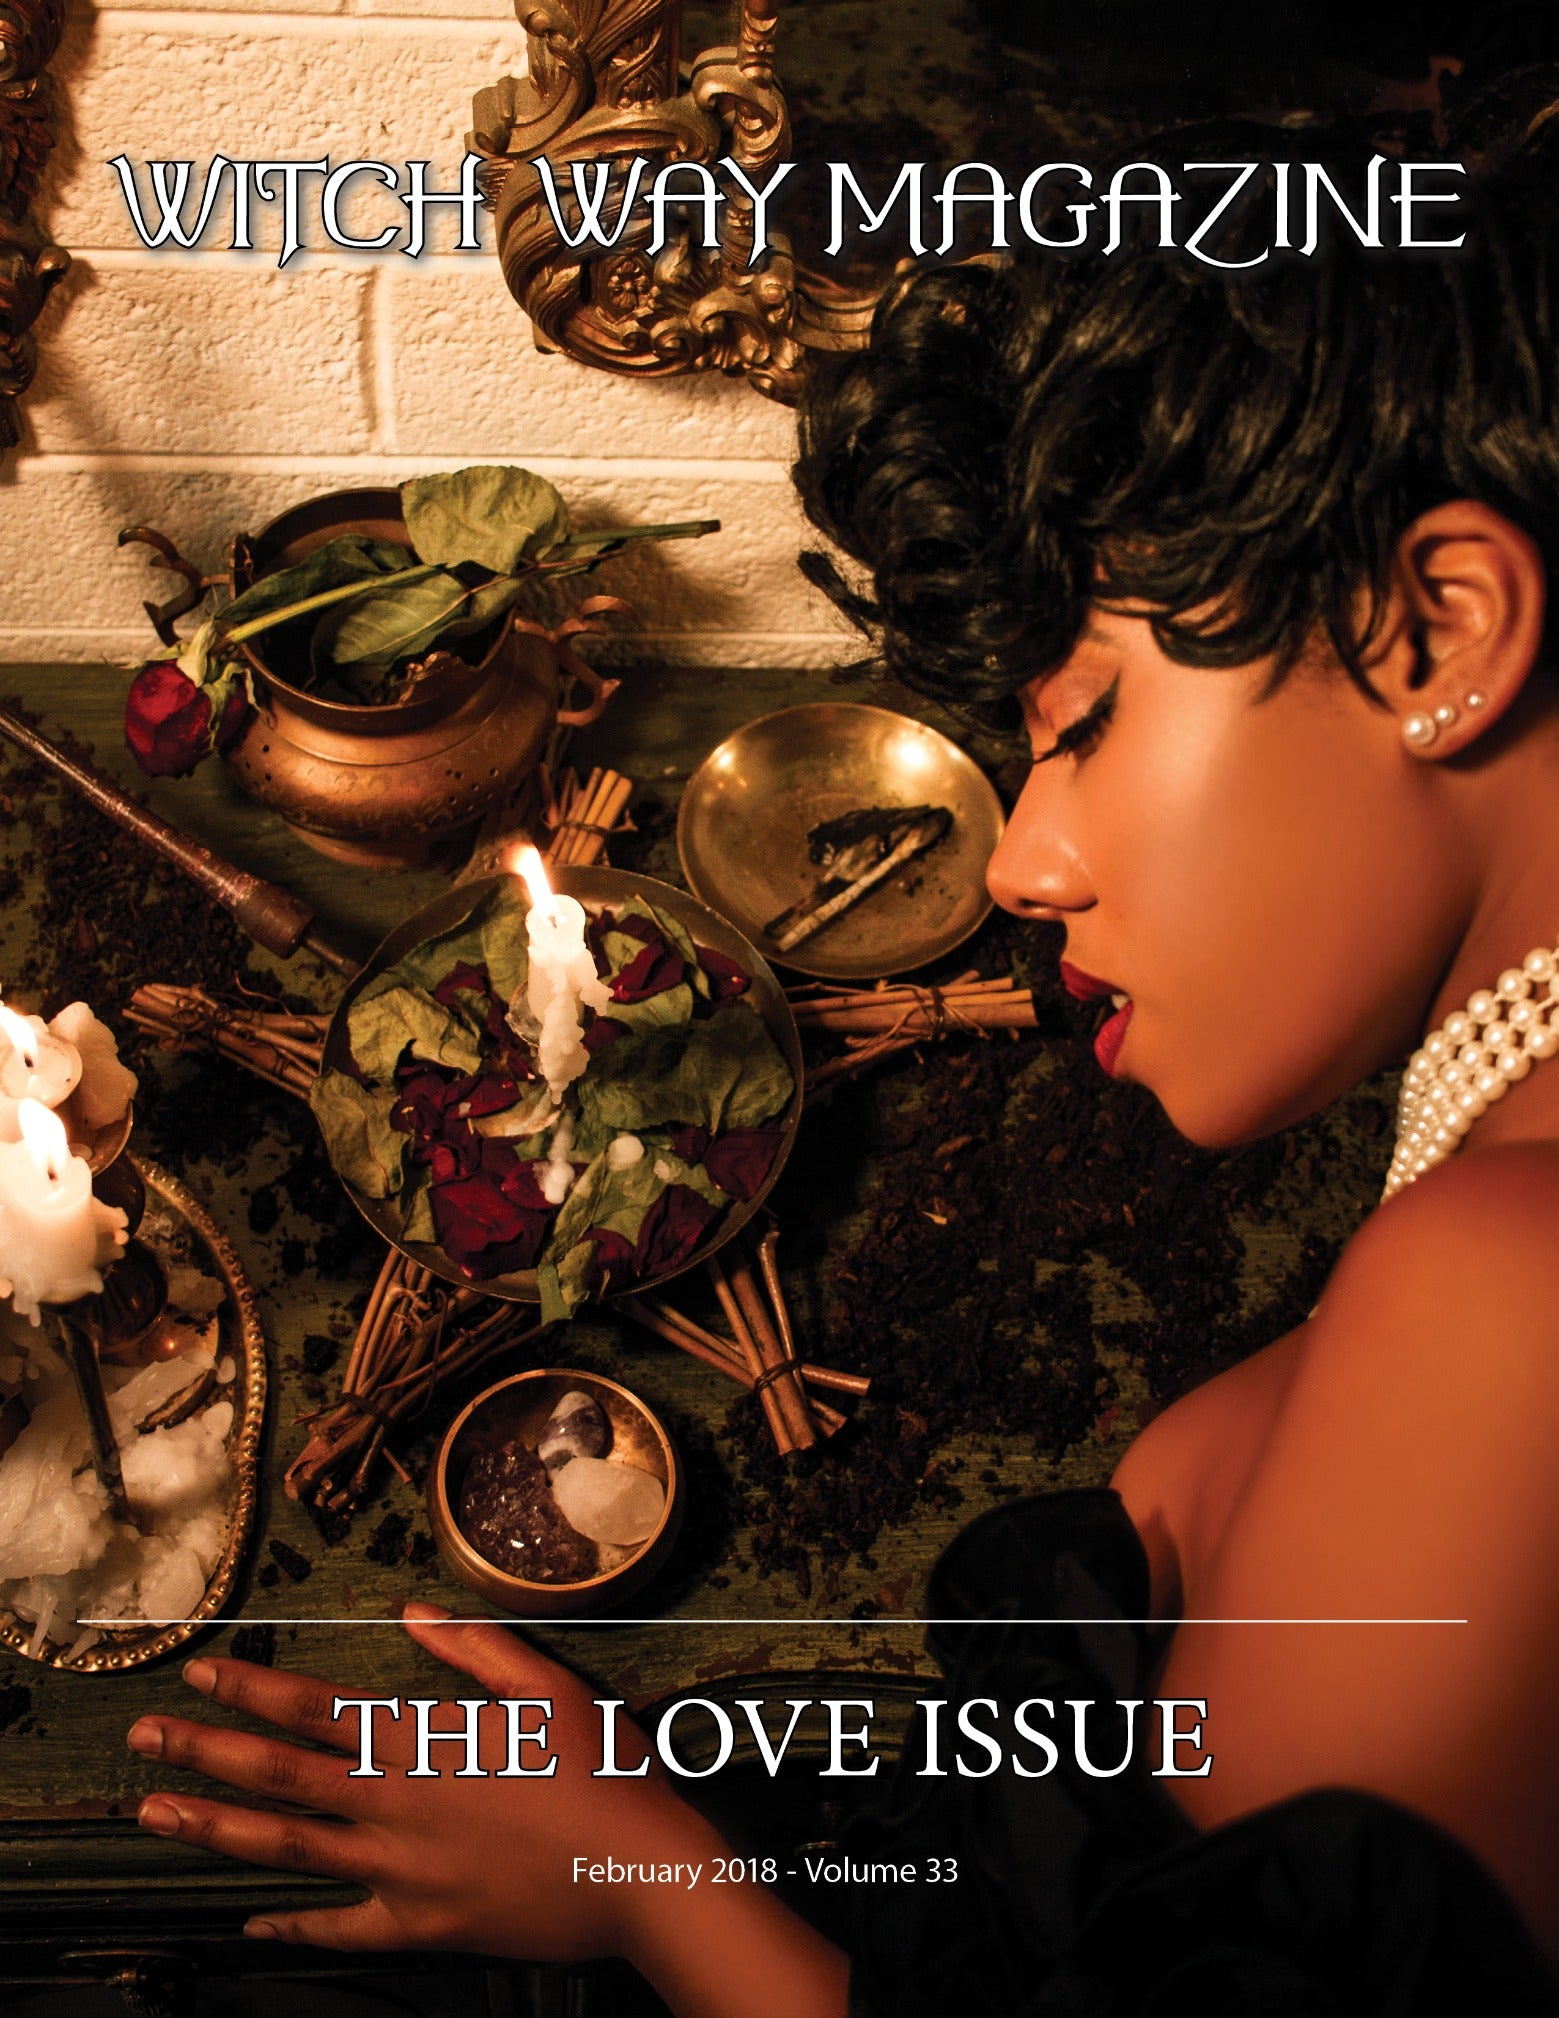 February 2018 Vol #33 - The Love Issue - Witch Way Magazine - Digital Issue